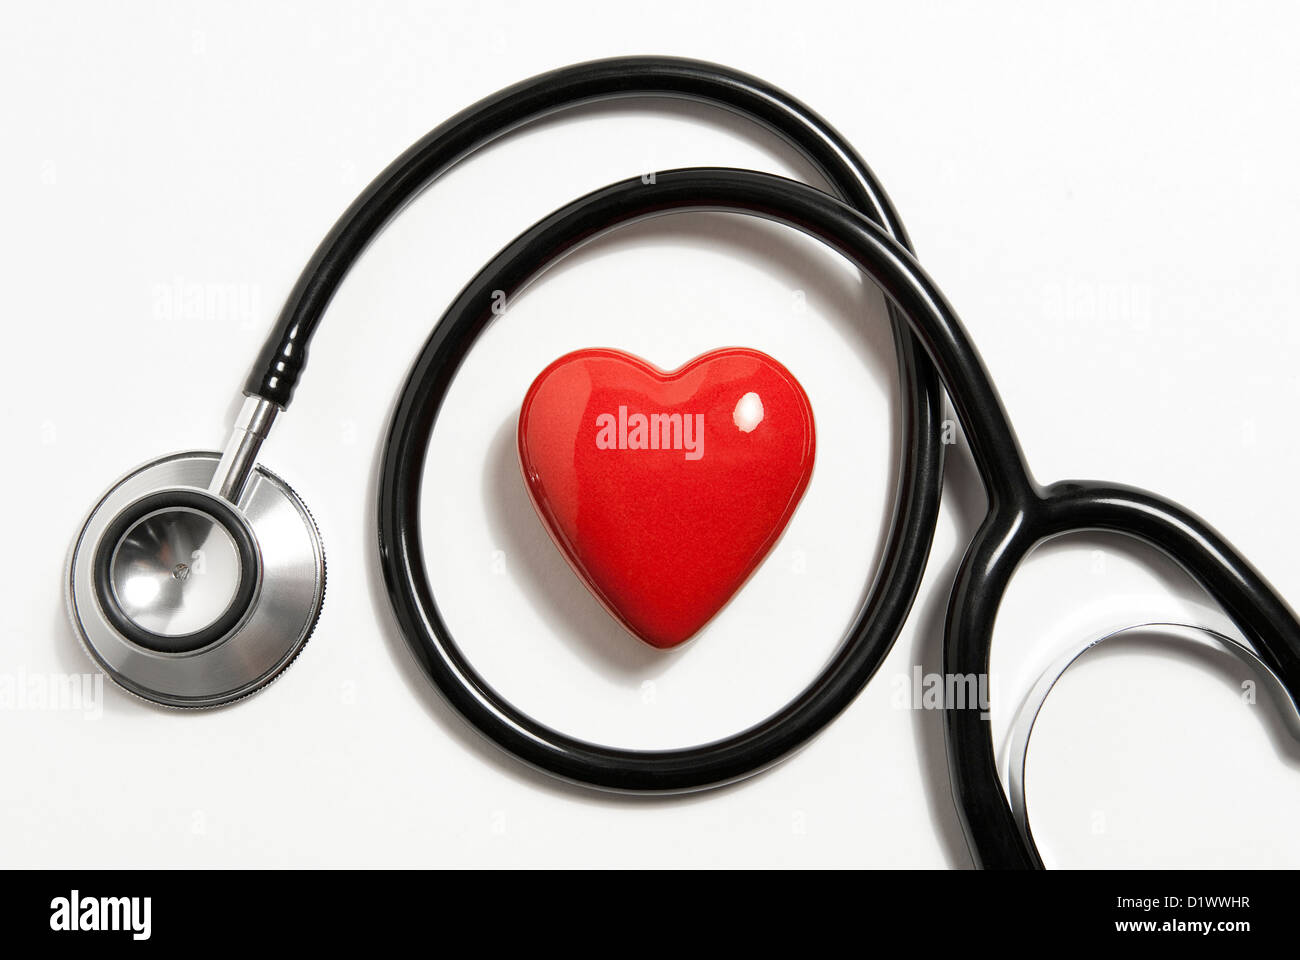 stethoscope and red heart shape - Stock Image